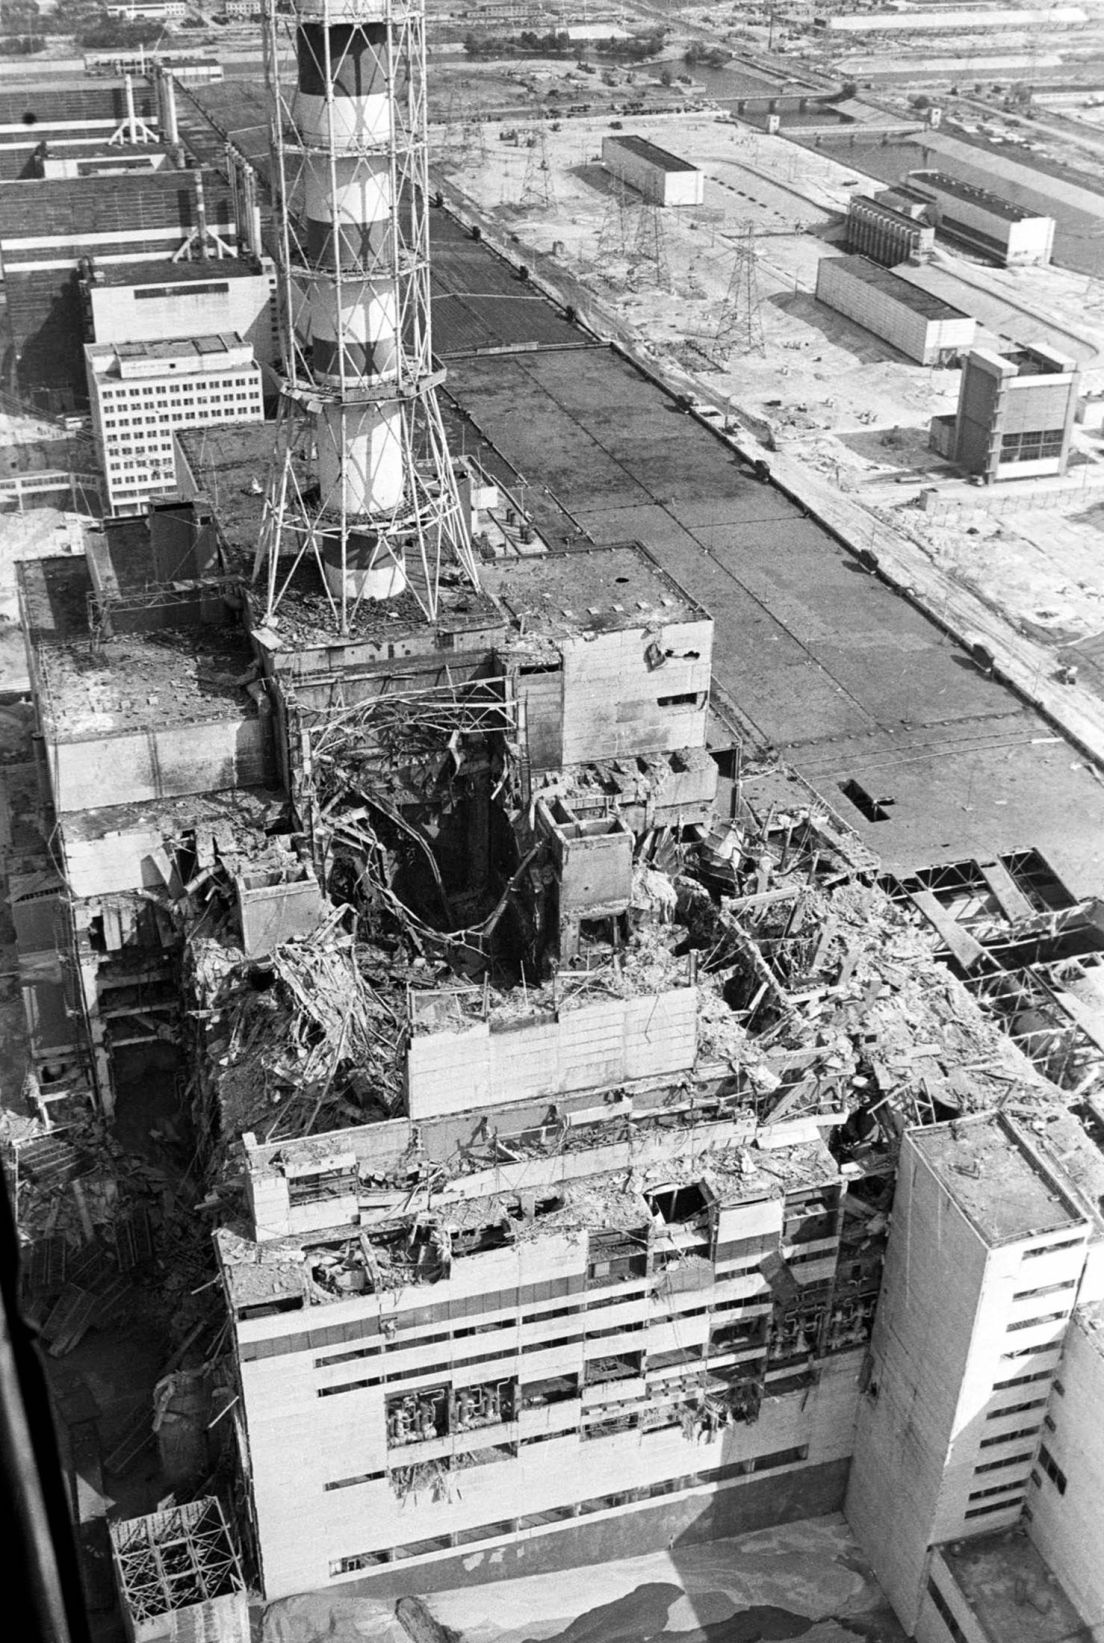 Chernobyl's 'liquidator': I cleaned up after the nuclear